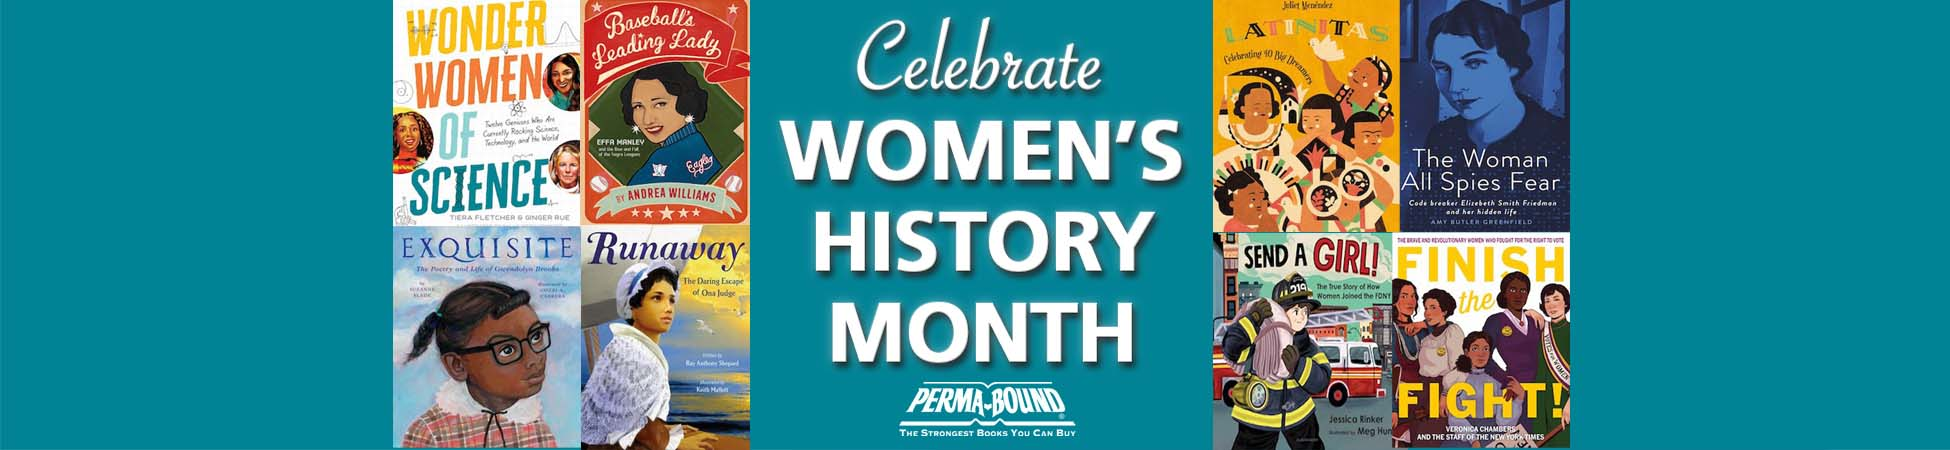 Women's History Month at Perma-Bound